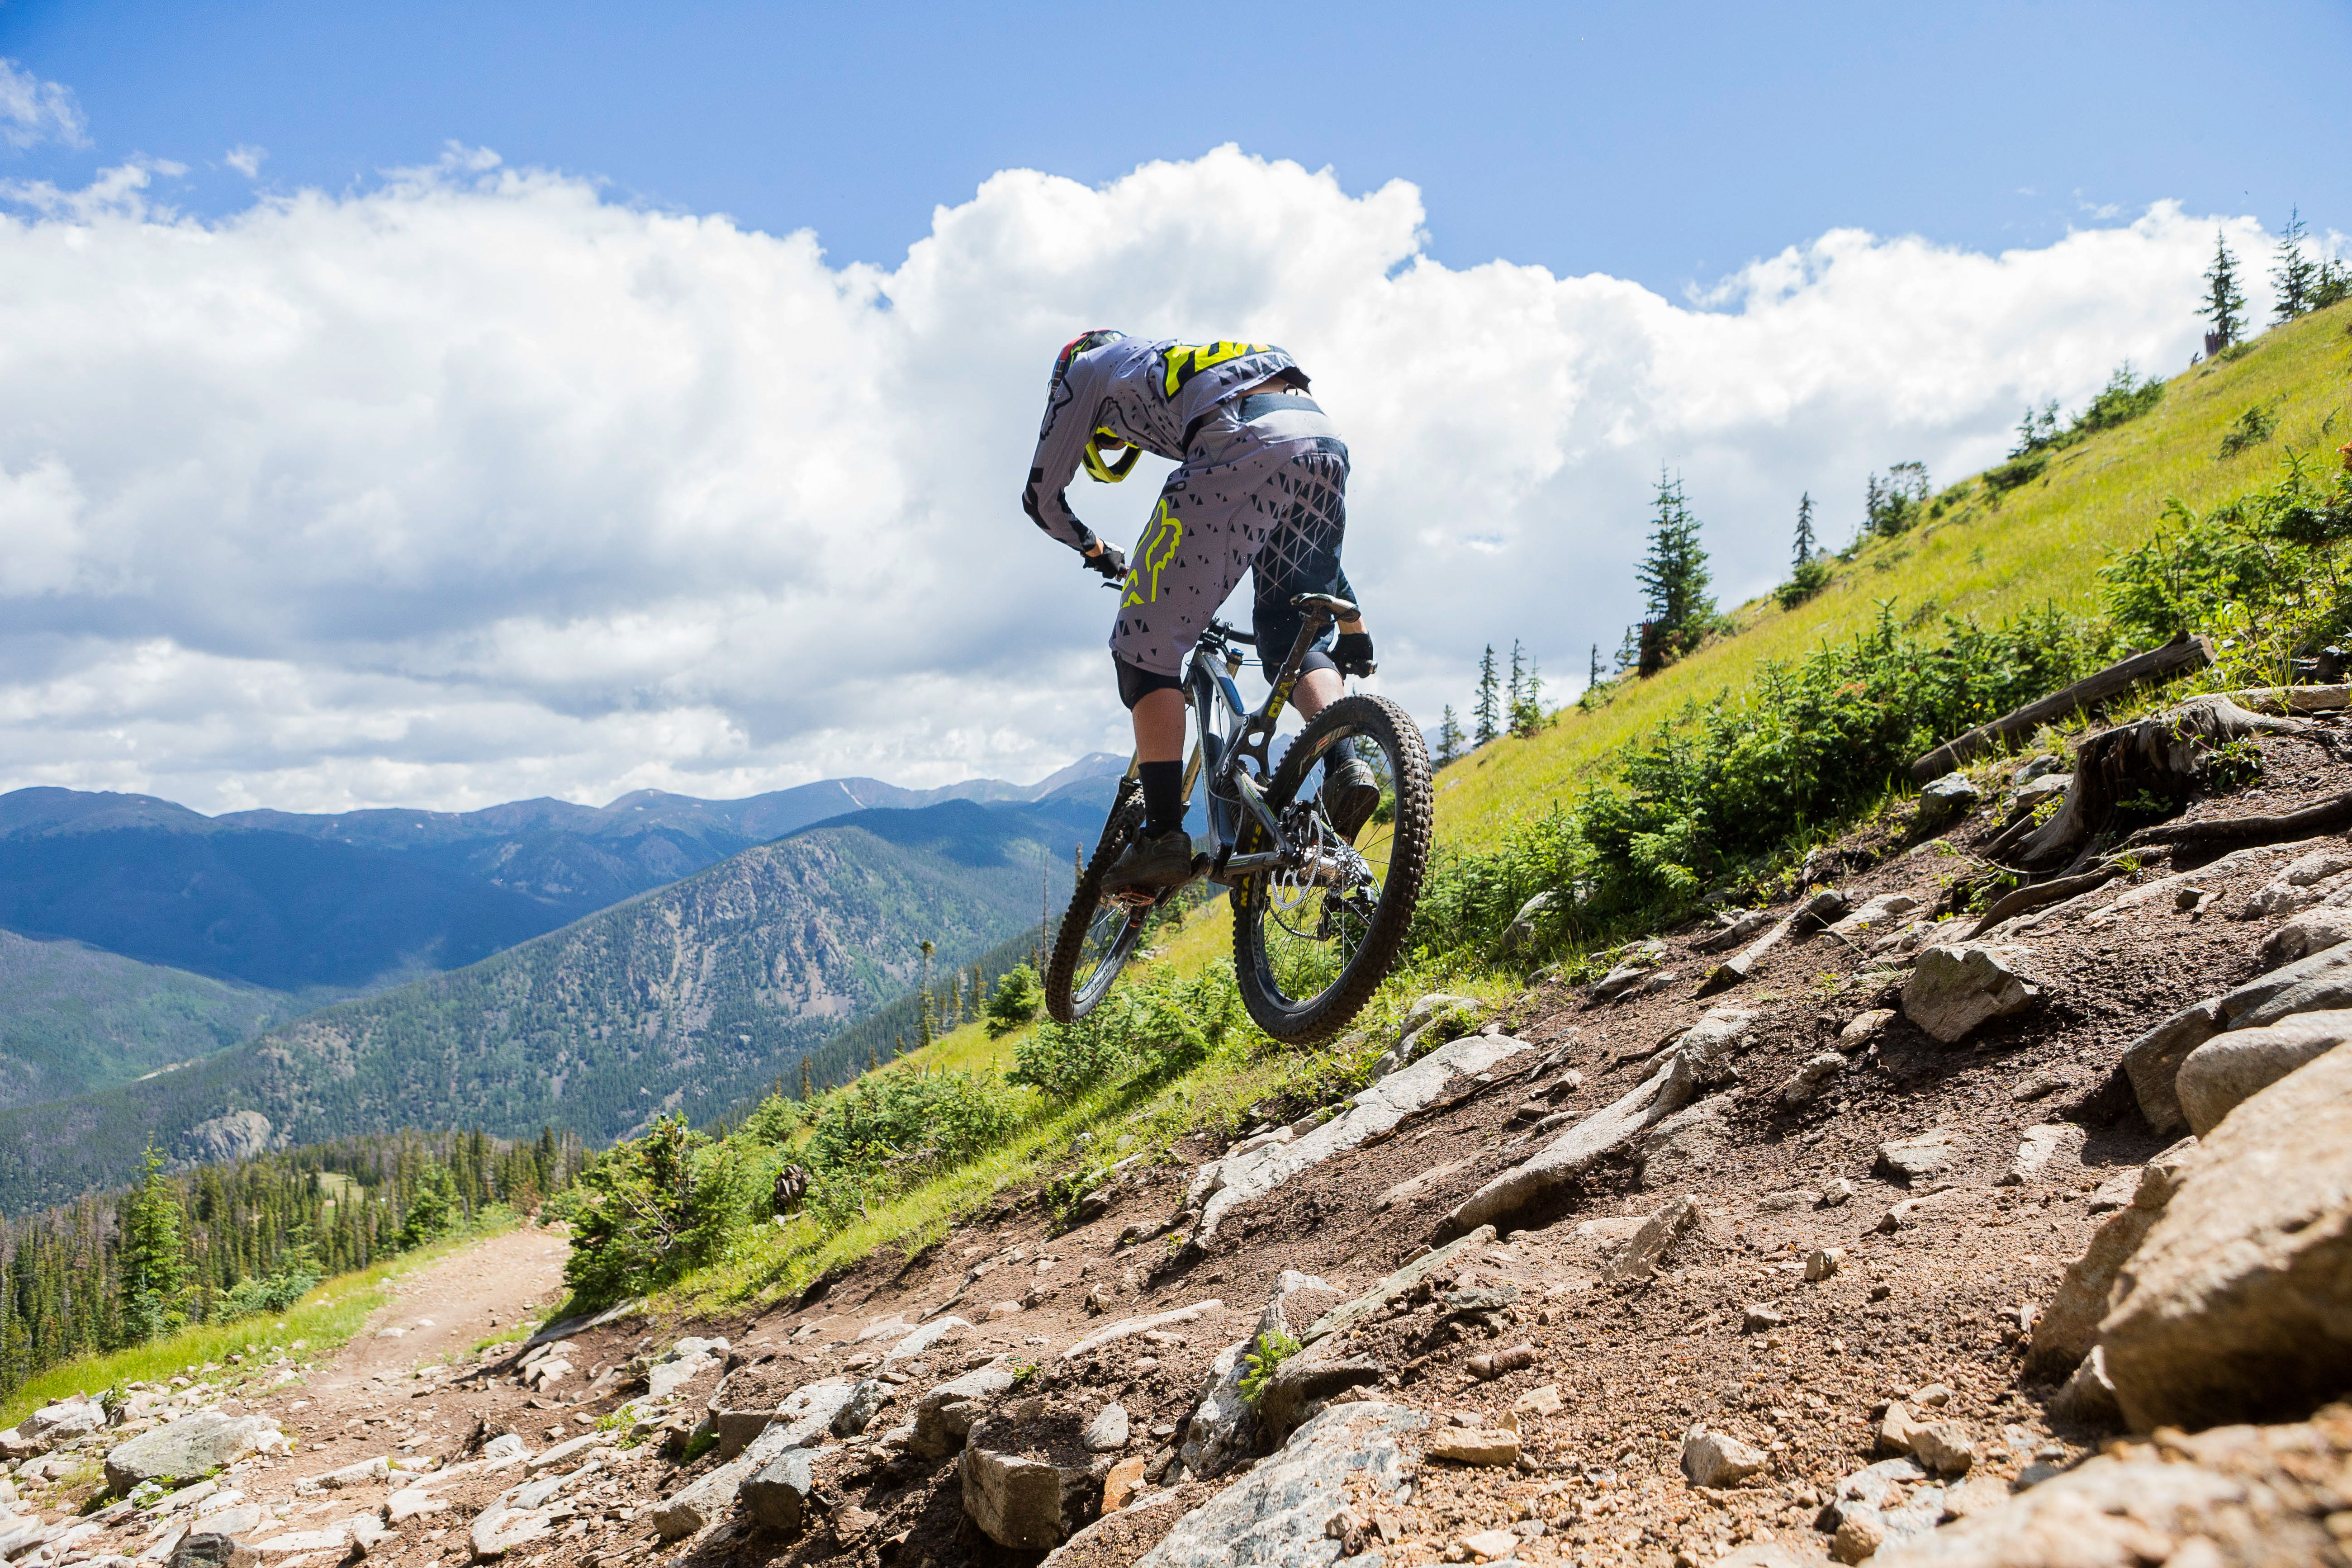 Man performing a downhill jump on a mountain bike